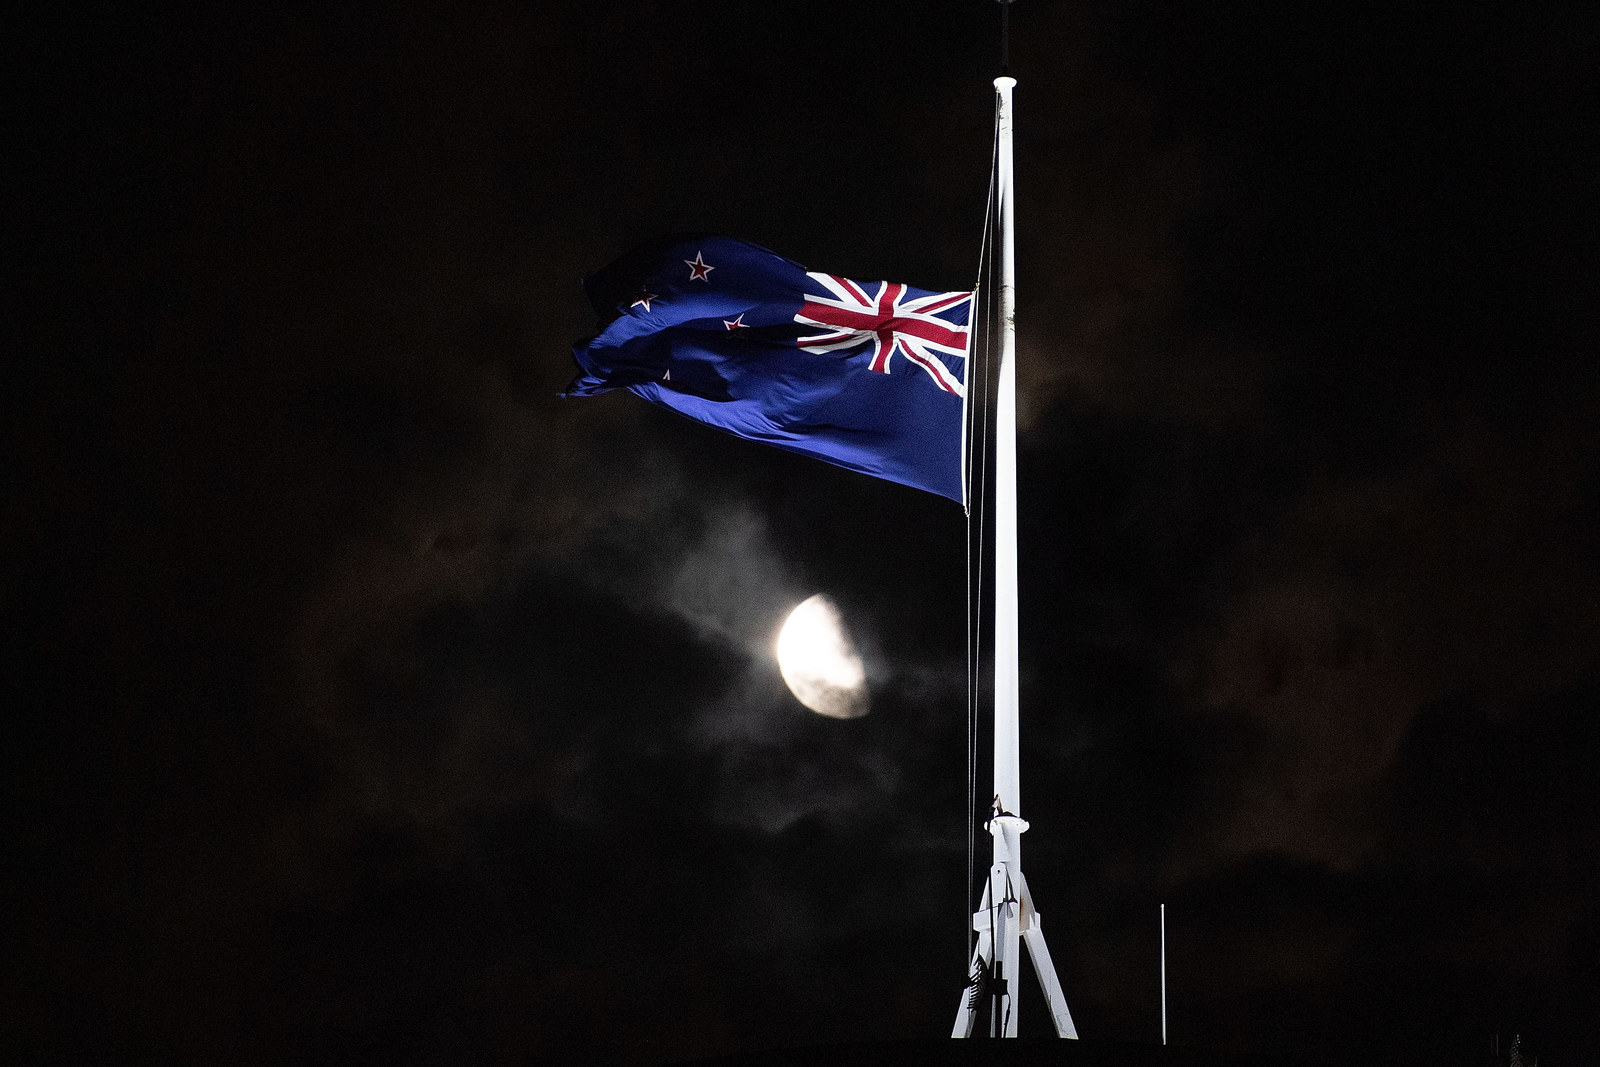 The New Zealand national flag is flown at half-mast on a Parliament building in Wellington.